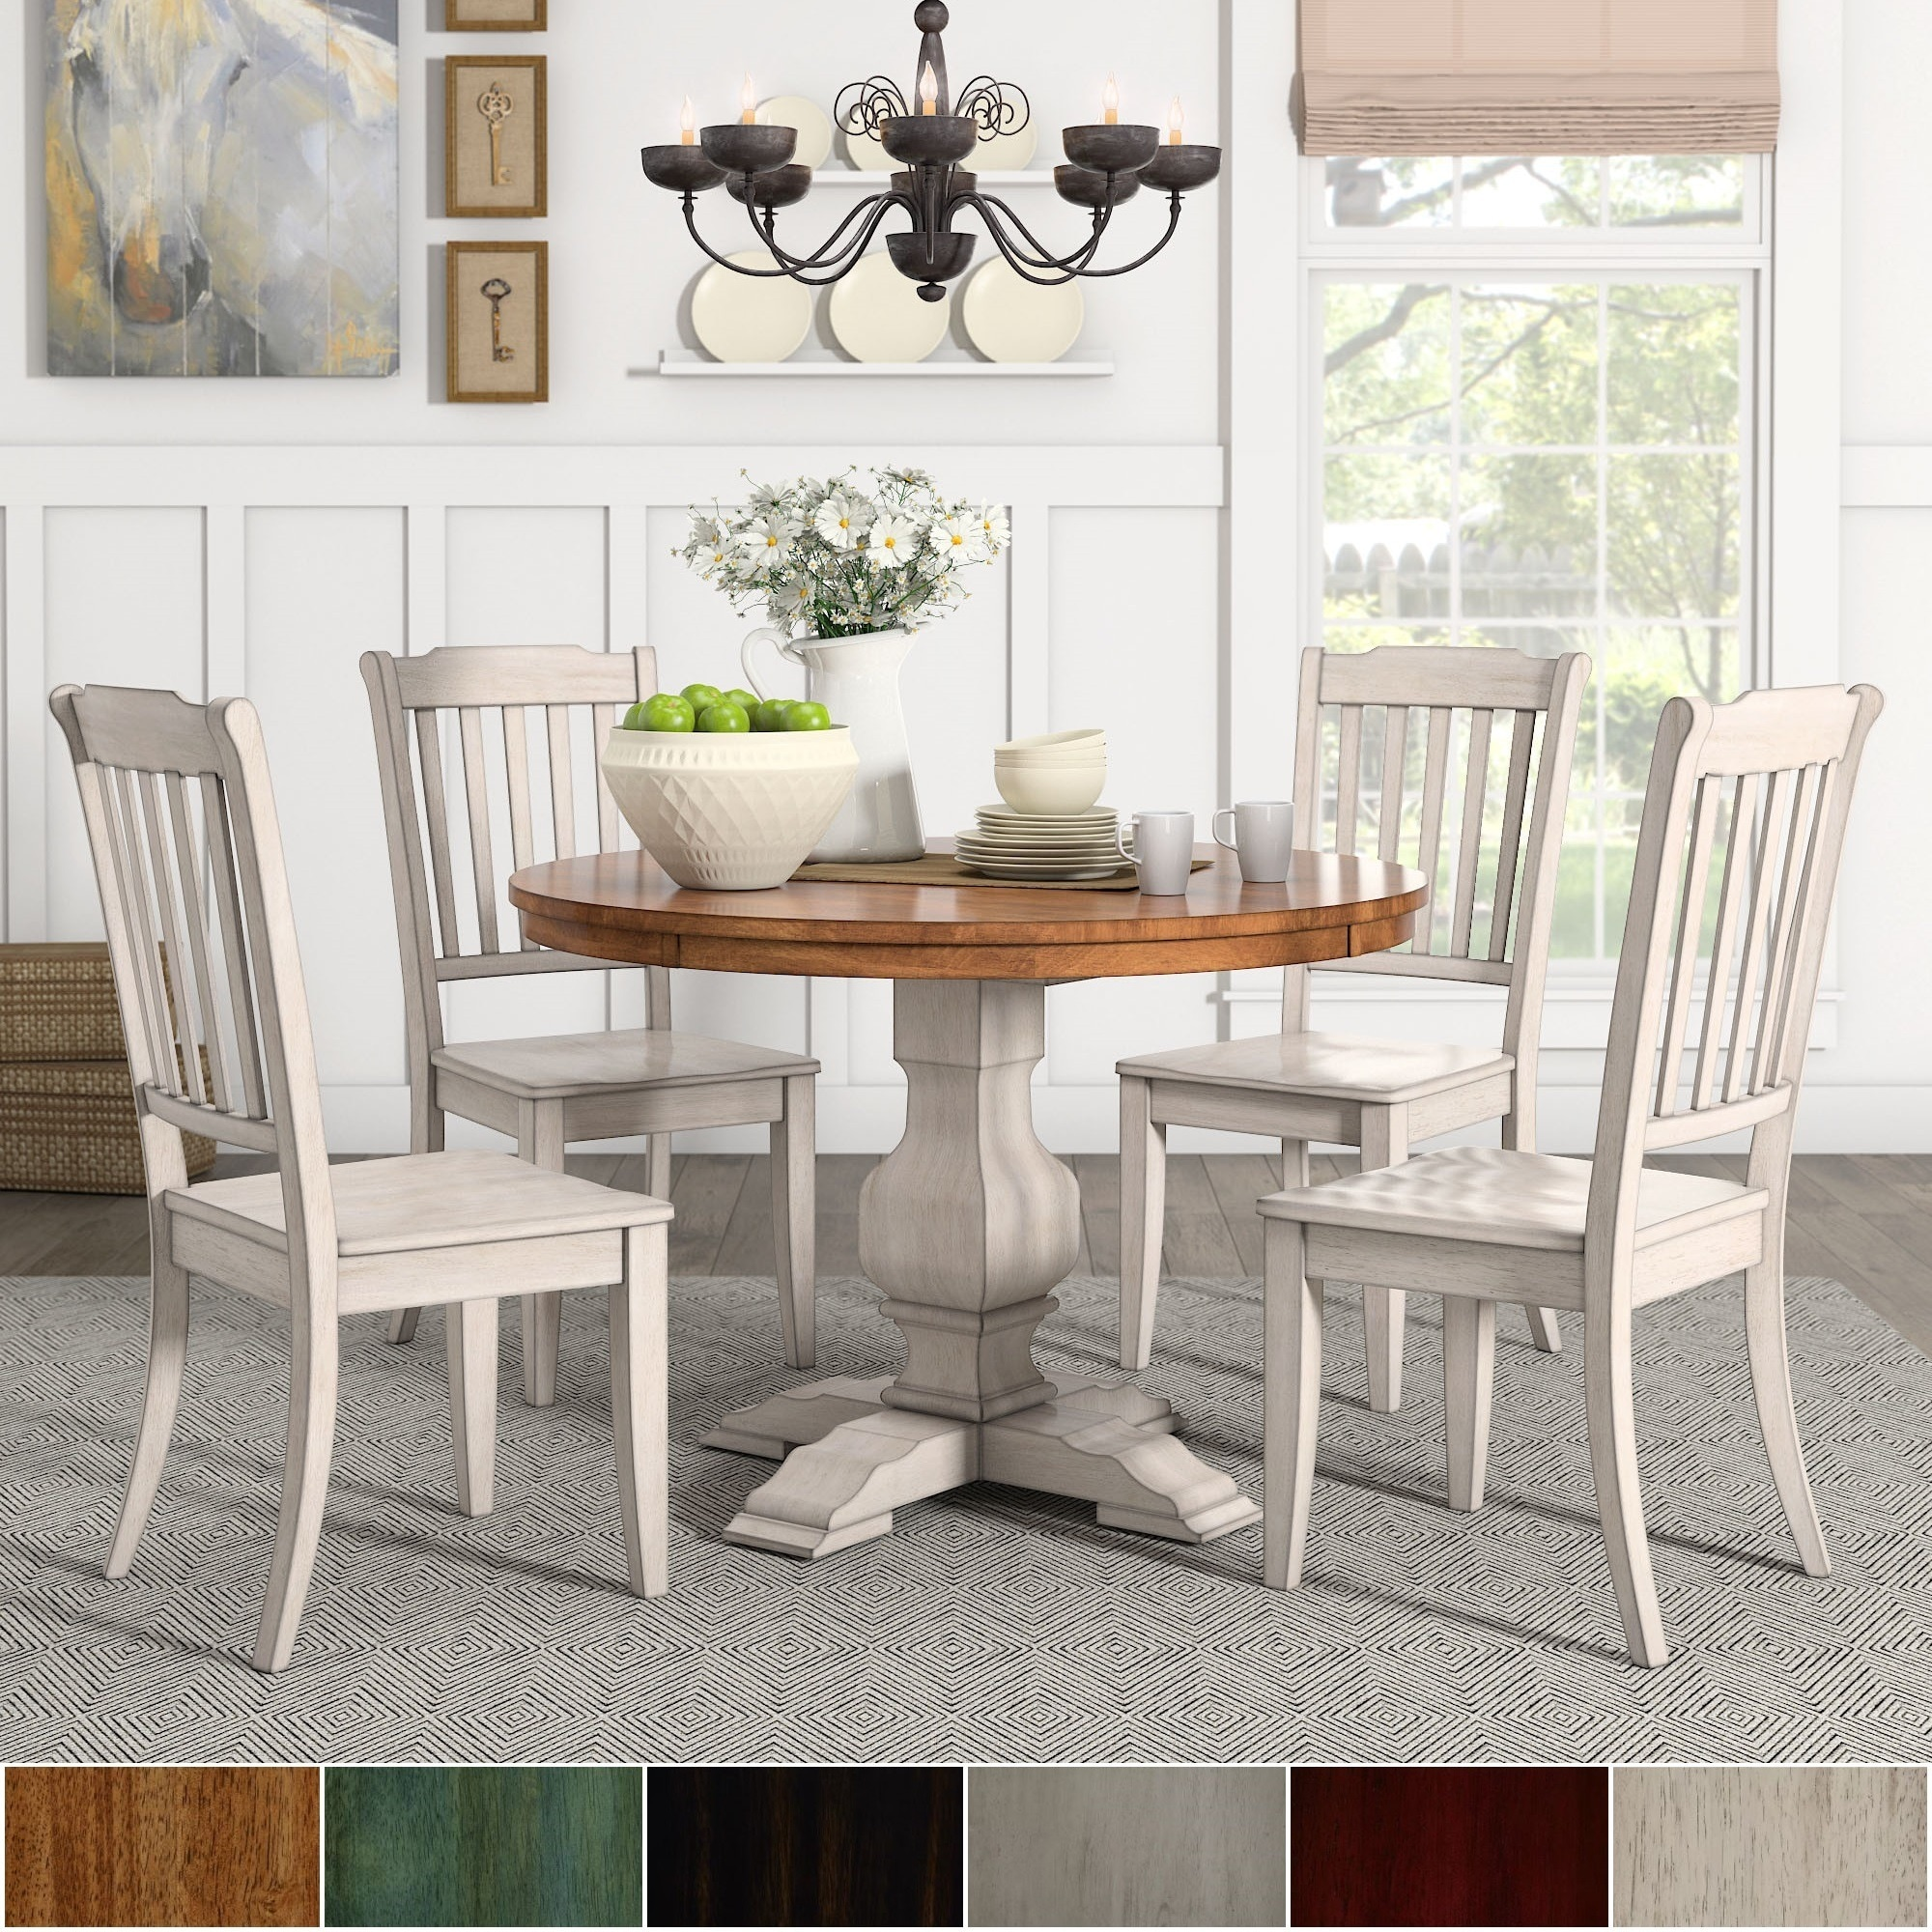 5 Piece Round Dining Set: Eleanor Antique White Round Solid Wood Top 5-Piece Dining